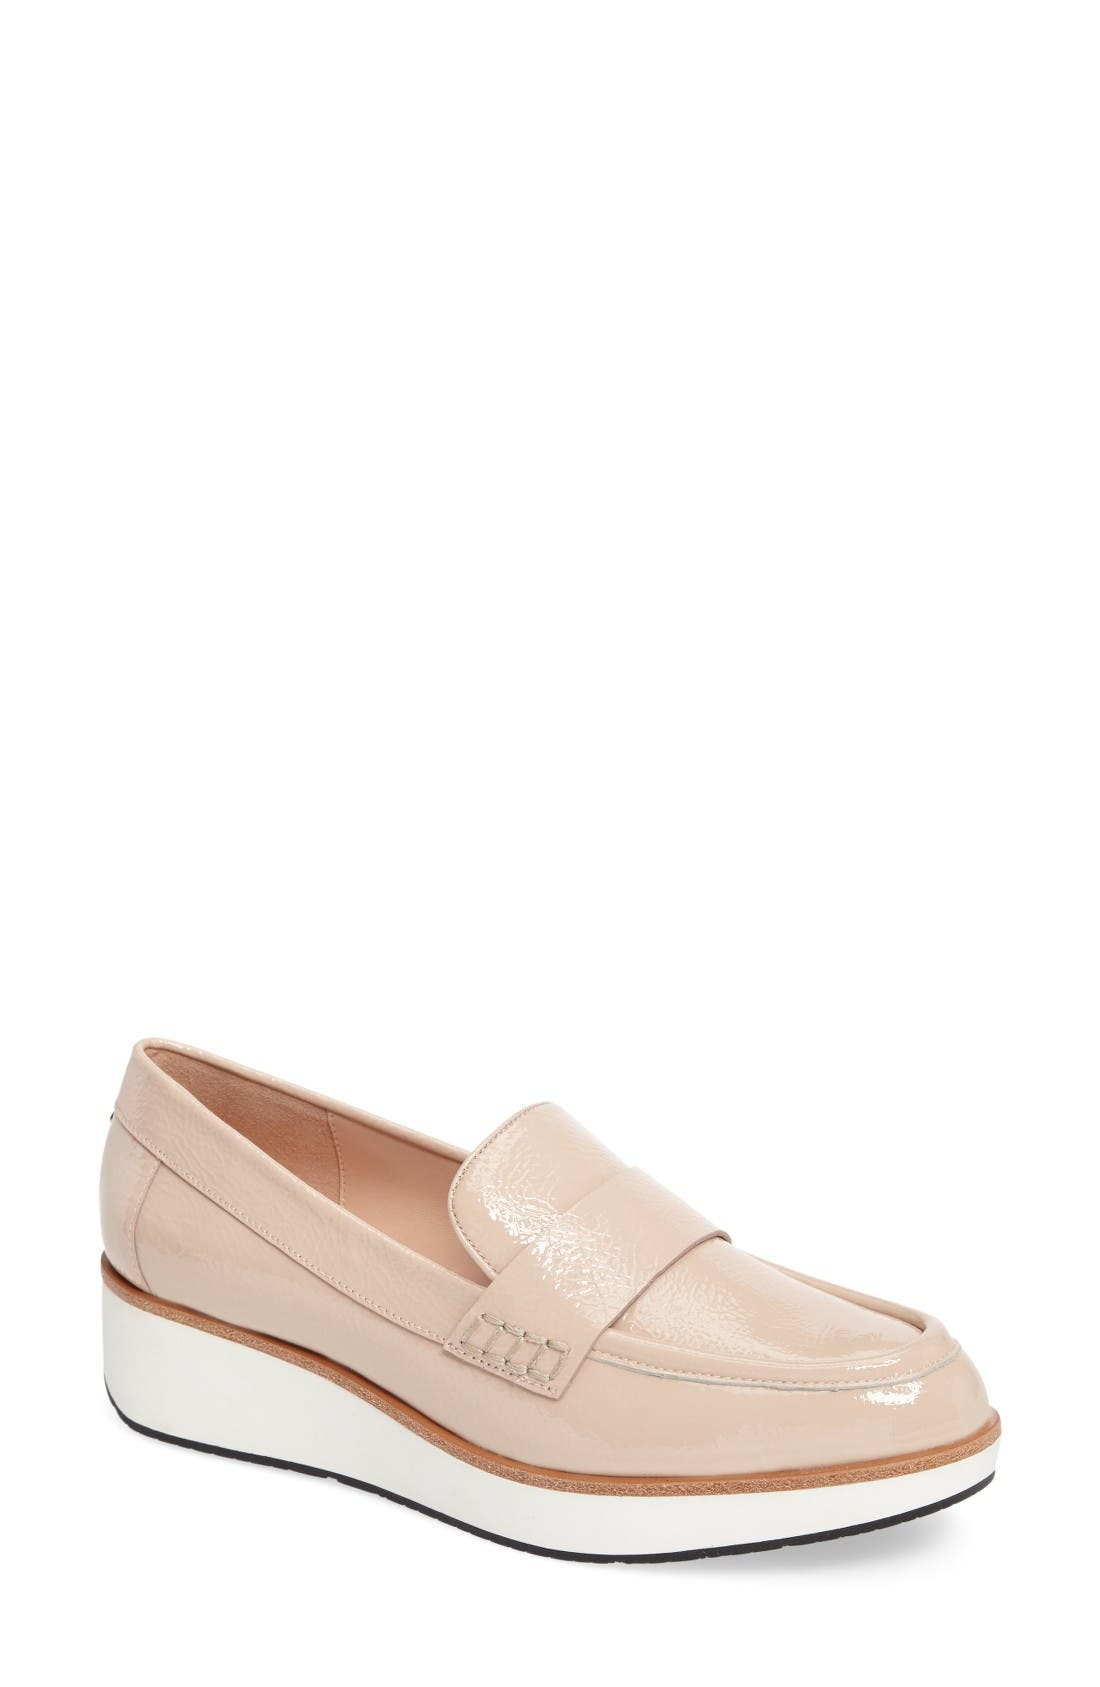 kate spade new york priya platform wedge loafer (Women)